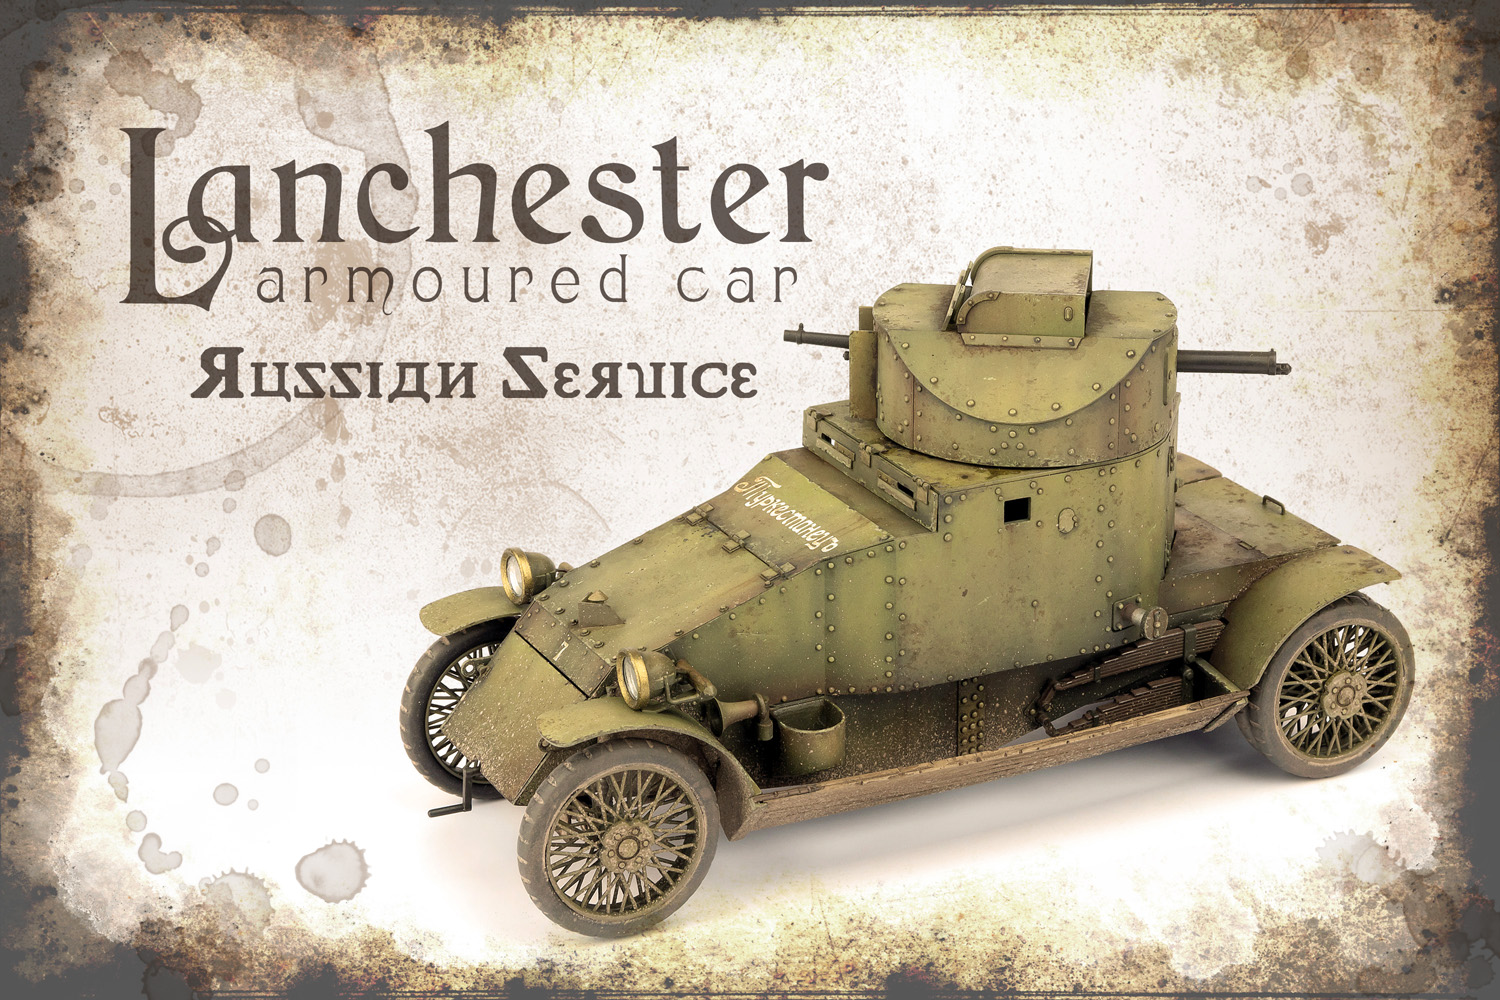 The Modelling News: Painting, weathering & finishing the 35th scale